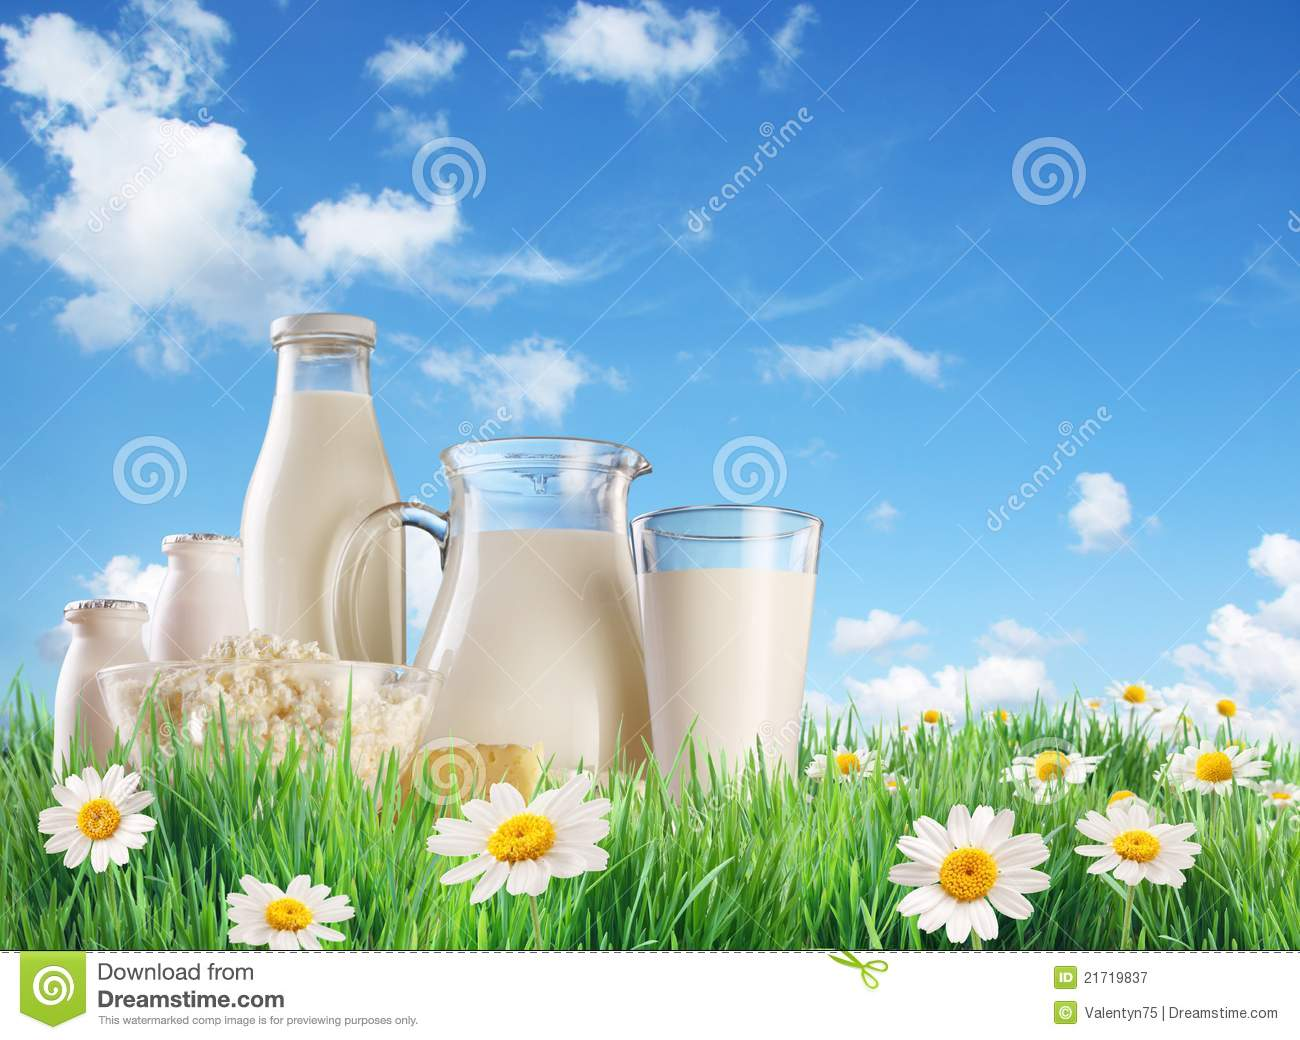 Dairy products on the grass.